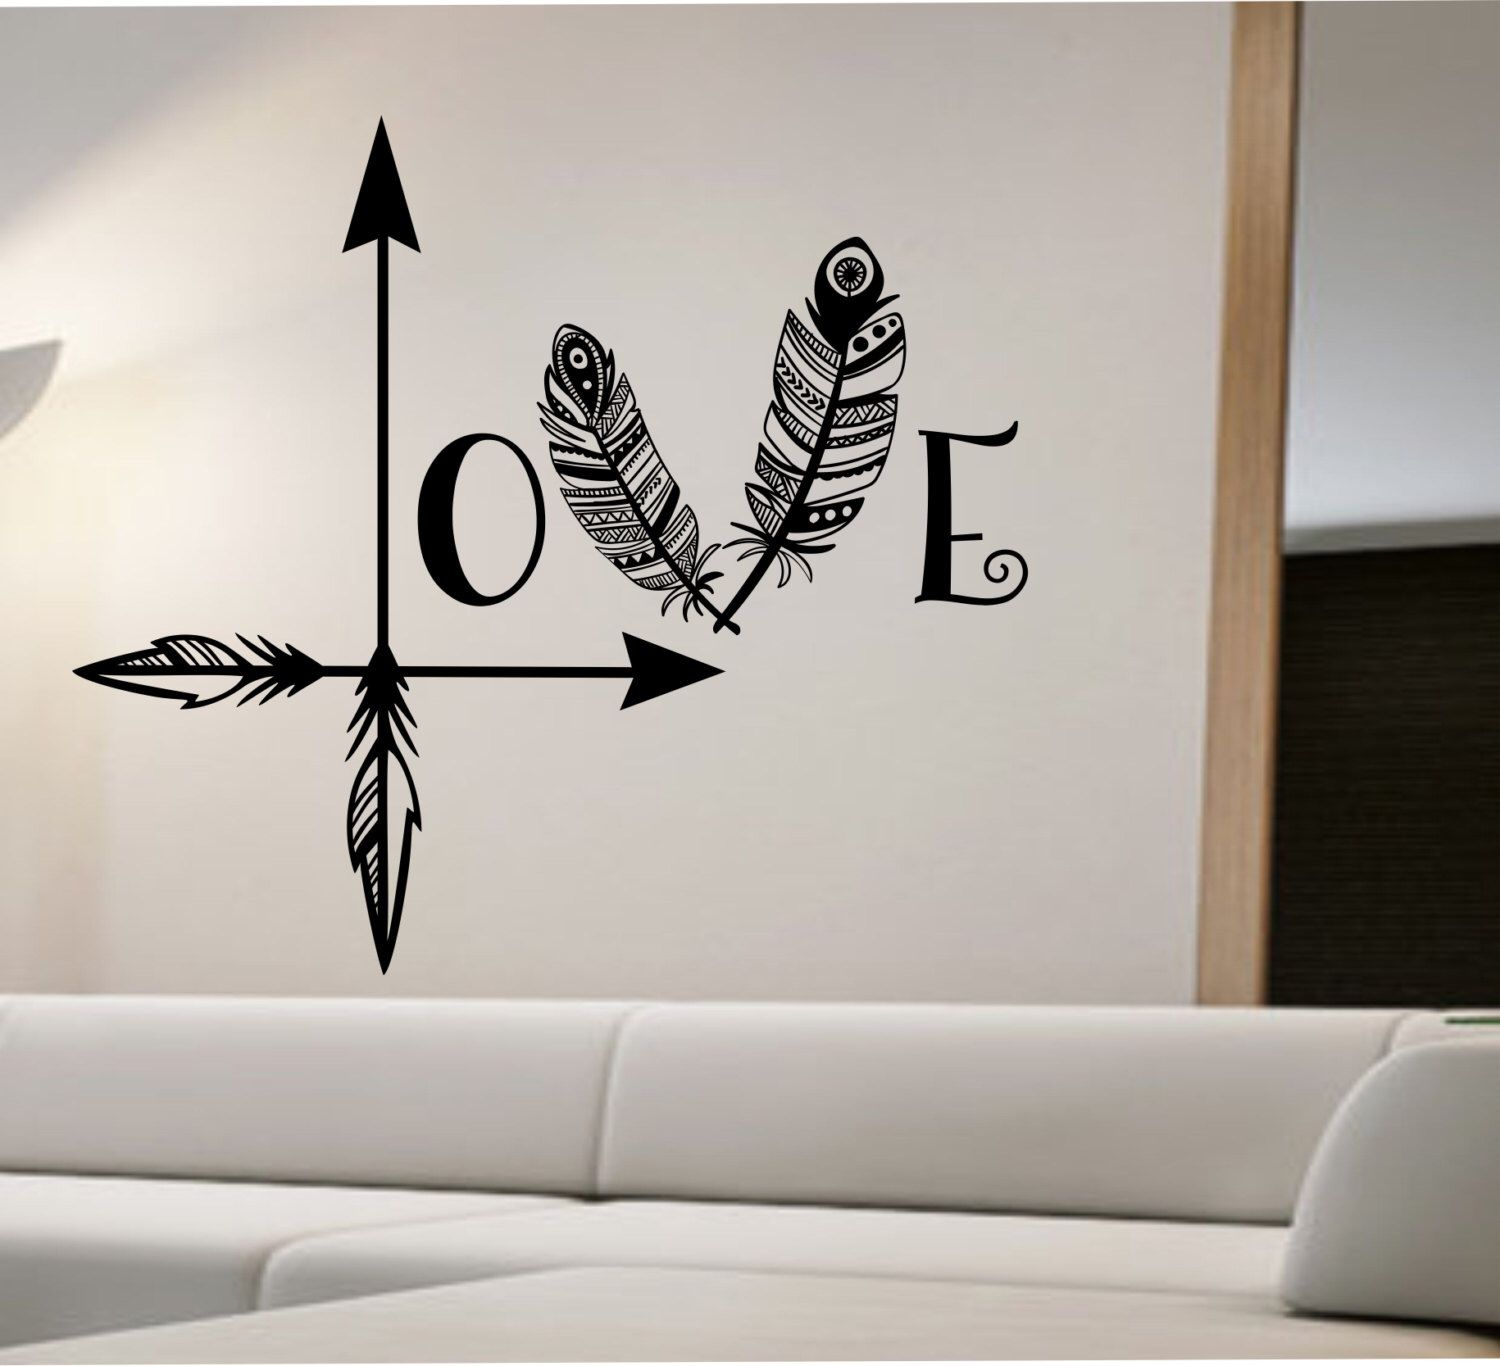 New Design Wall Art : Arrow feather love wall decal namaste vinyl sticker art